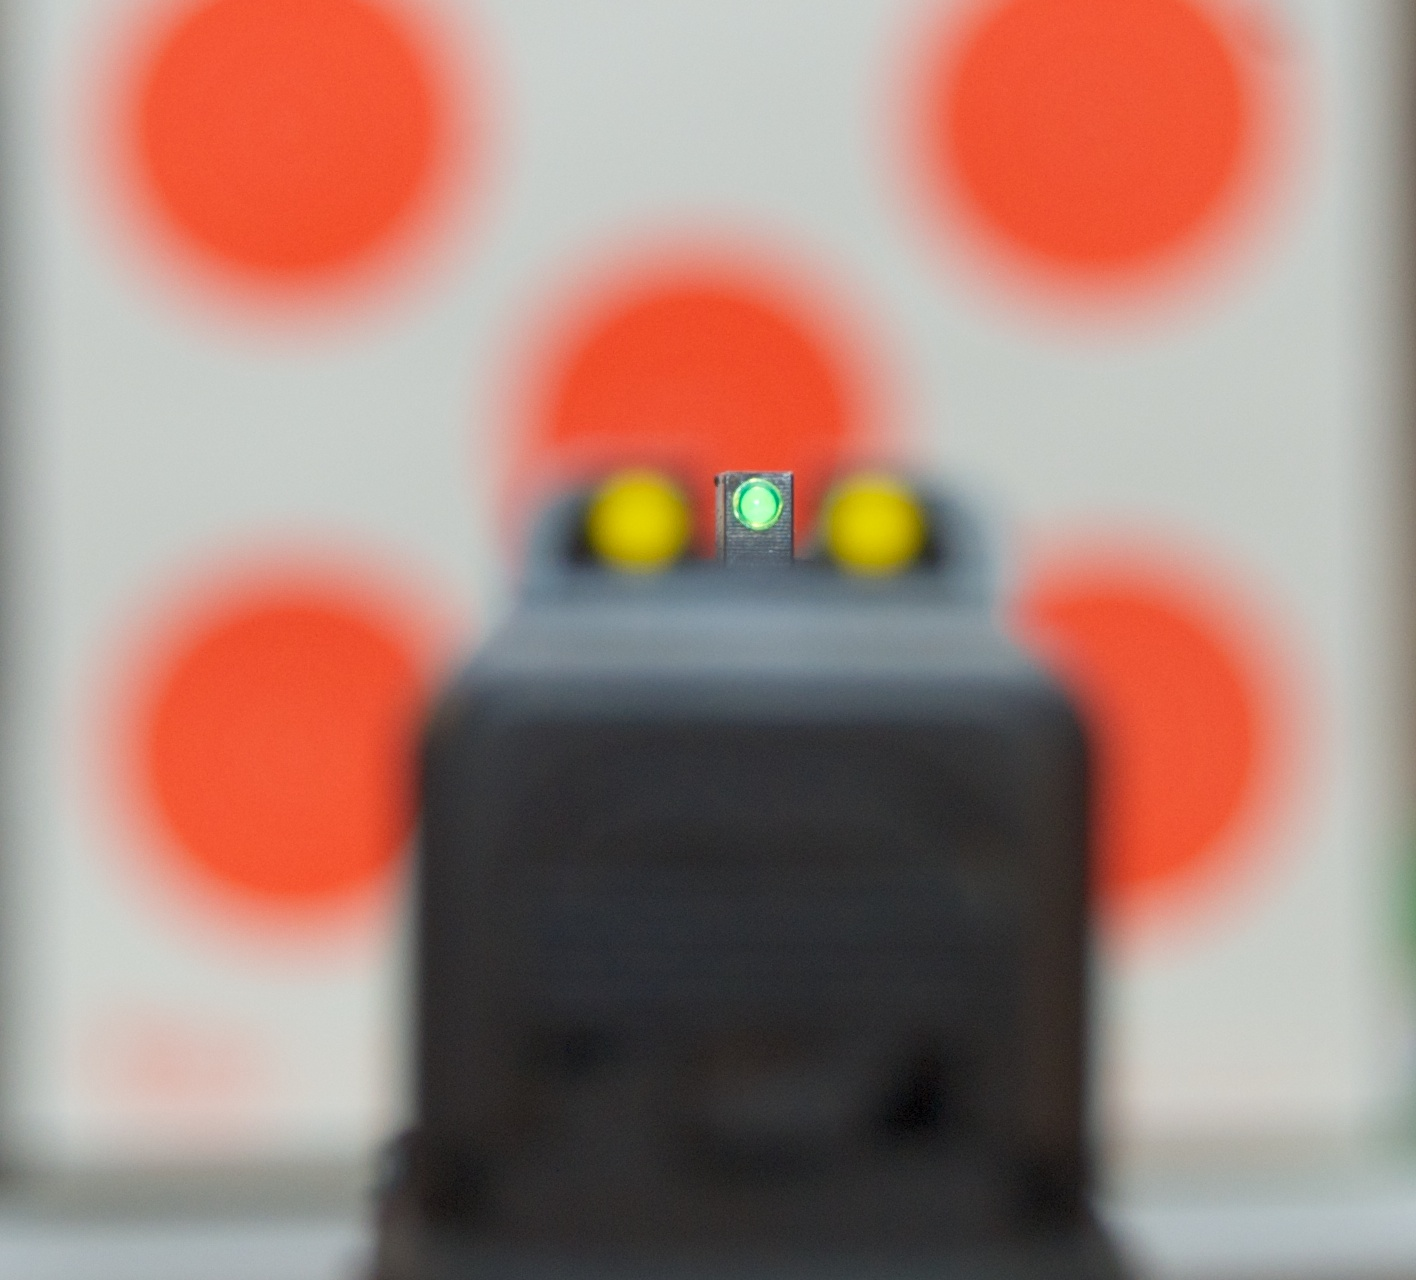 All is right in the world when the front sight is in focus.